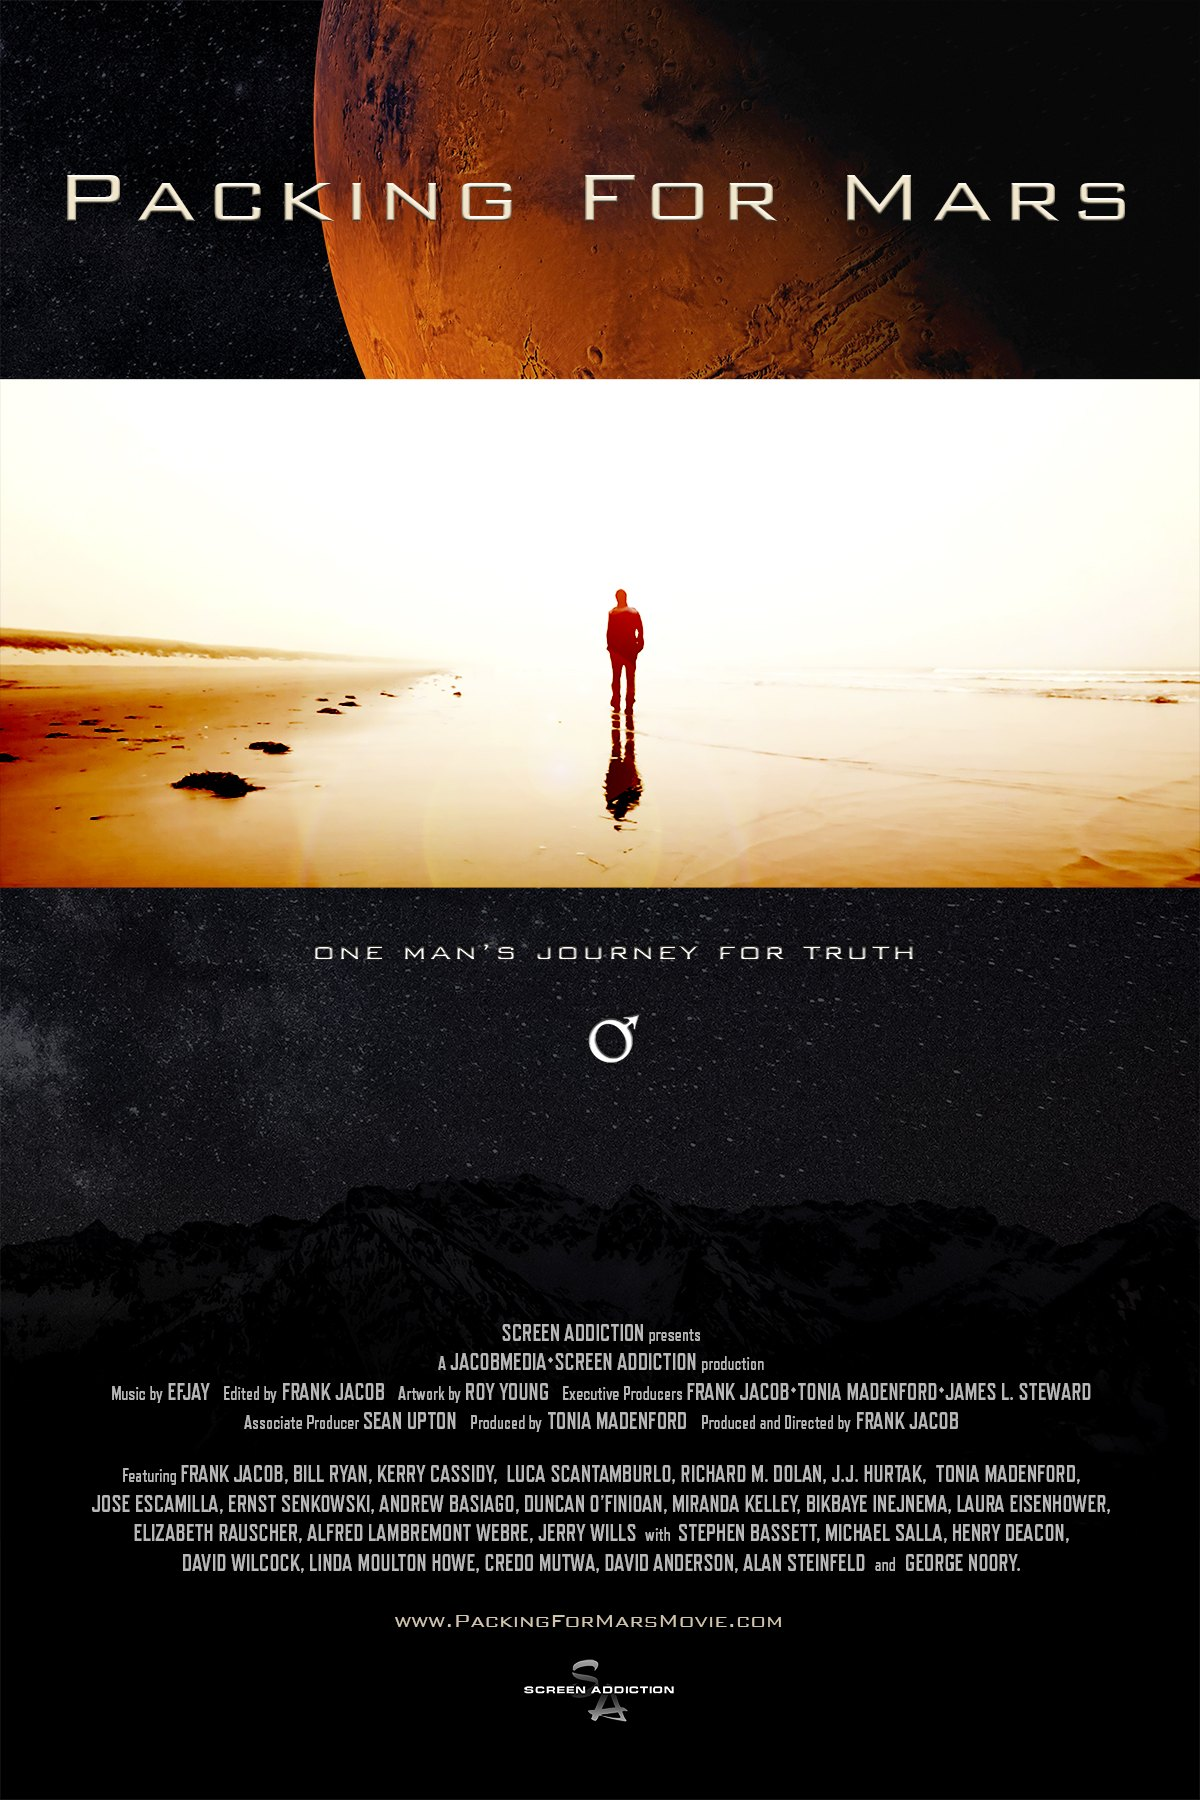 Packing for Mars - Movie - by Frank Jacob